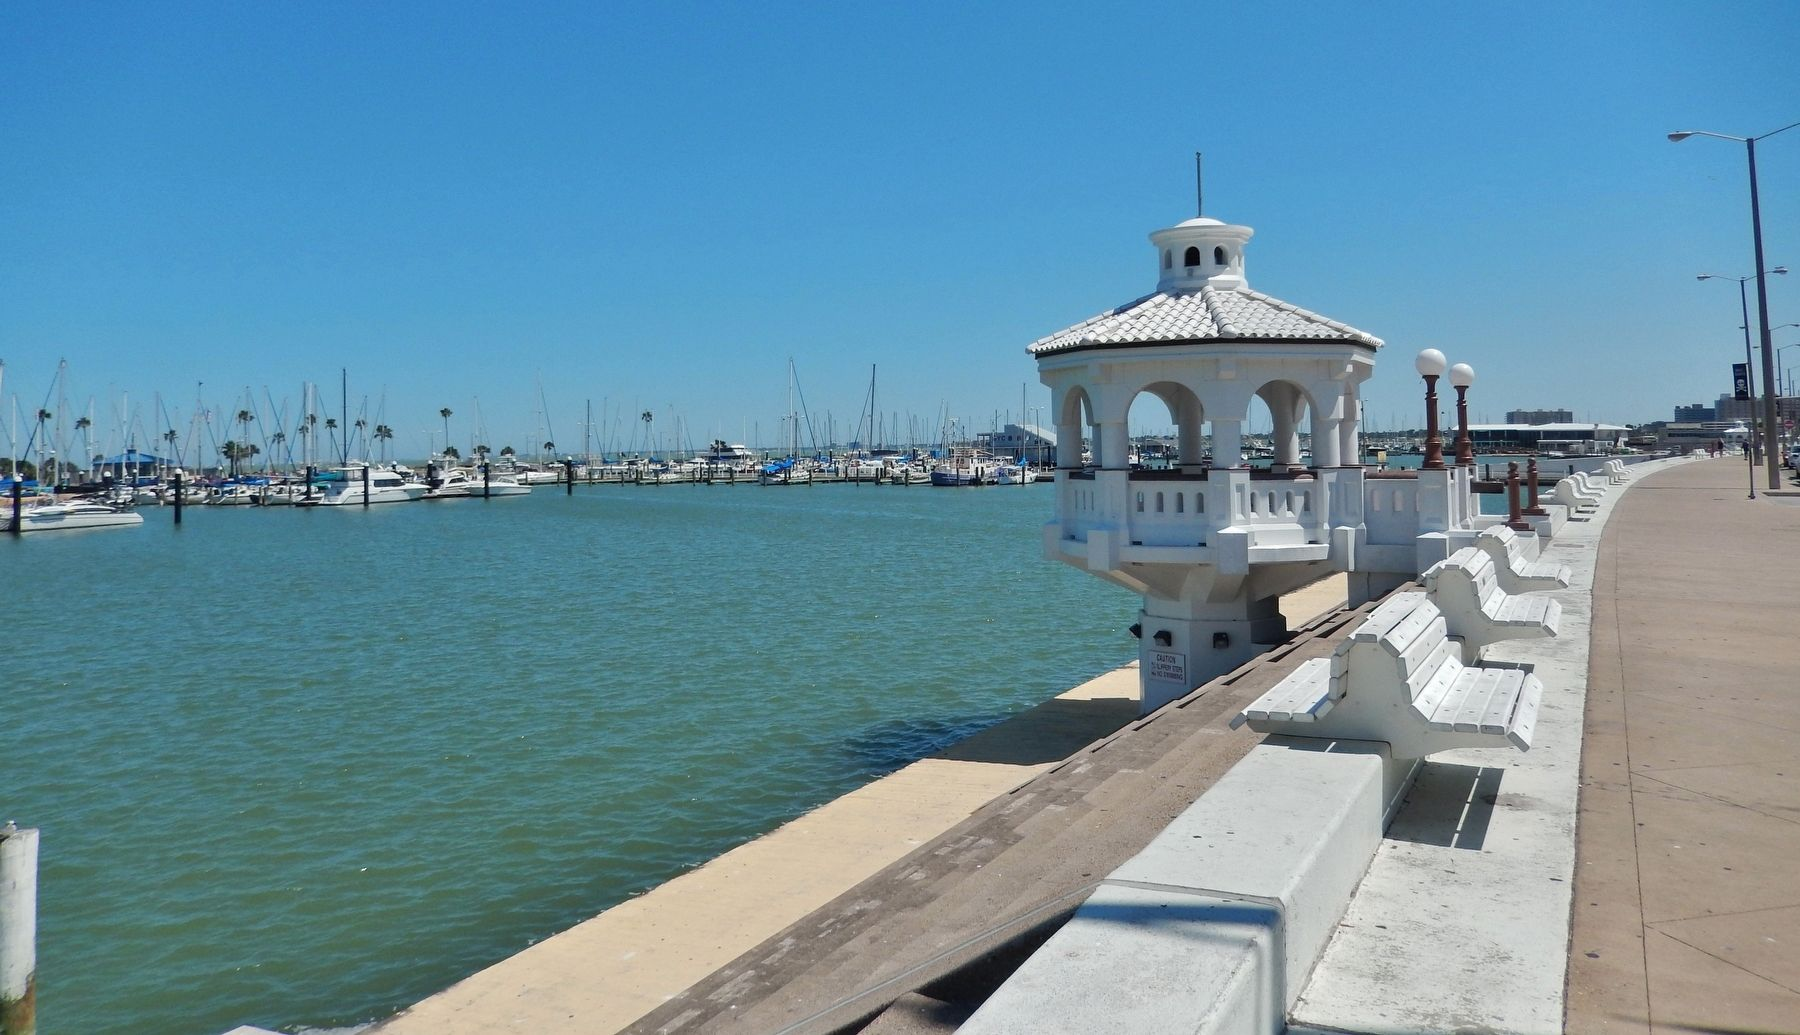 Corpus Christi Seawall (<i>view from near marker</i>) image. Click for full size.